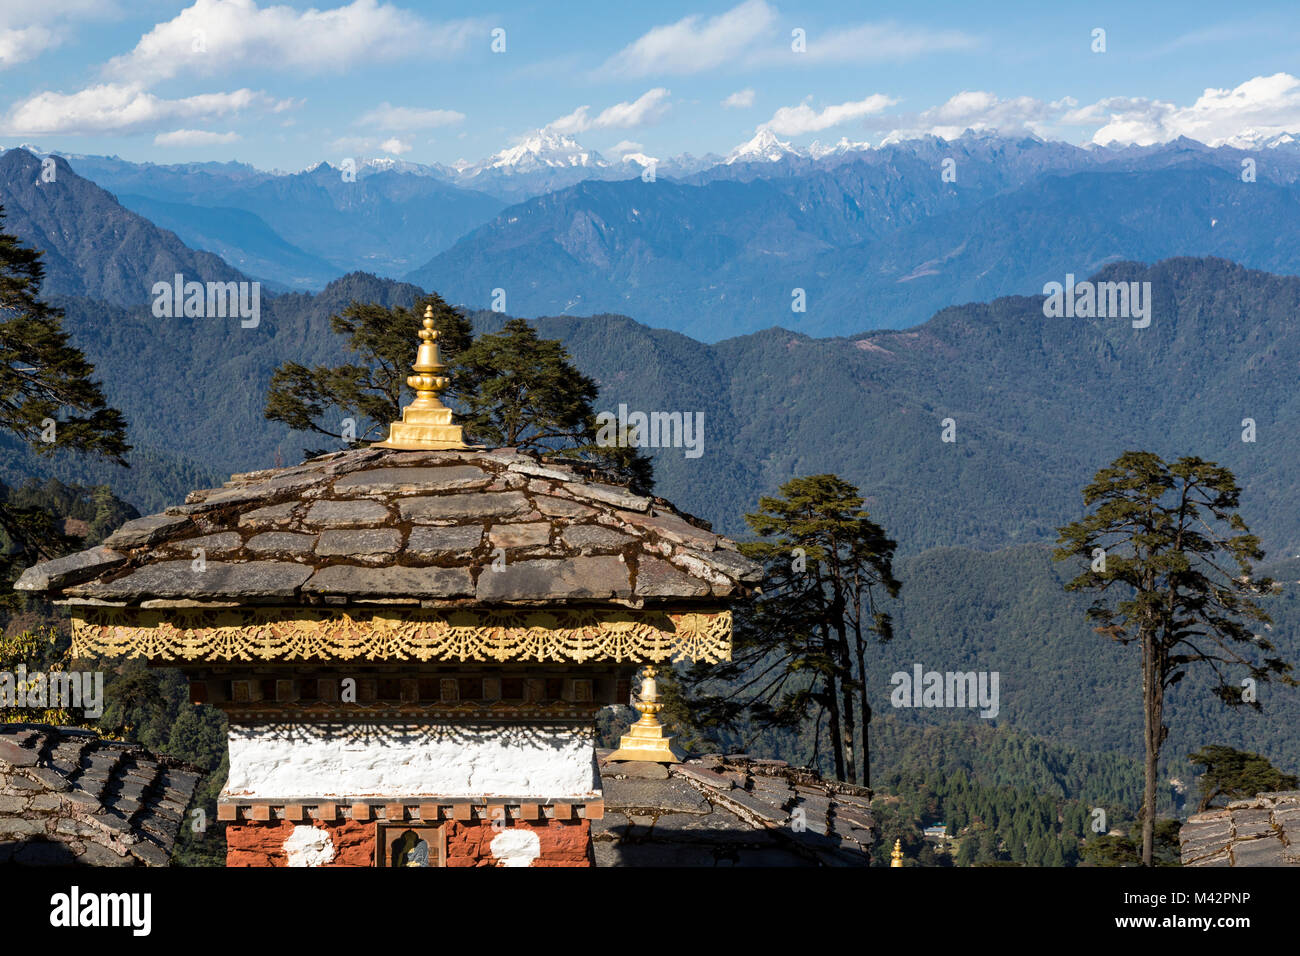 Punakha, Bhutan.  Chortens (Shrines) at a Mountain Pass in Himalayan Foothills; Himalayan Mountains in the Distance. - Stock Image